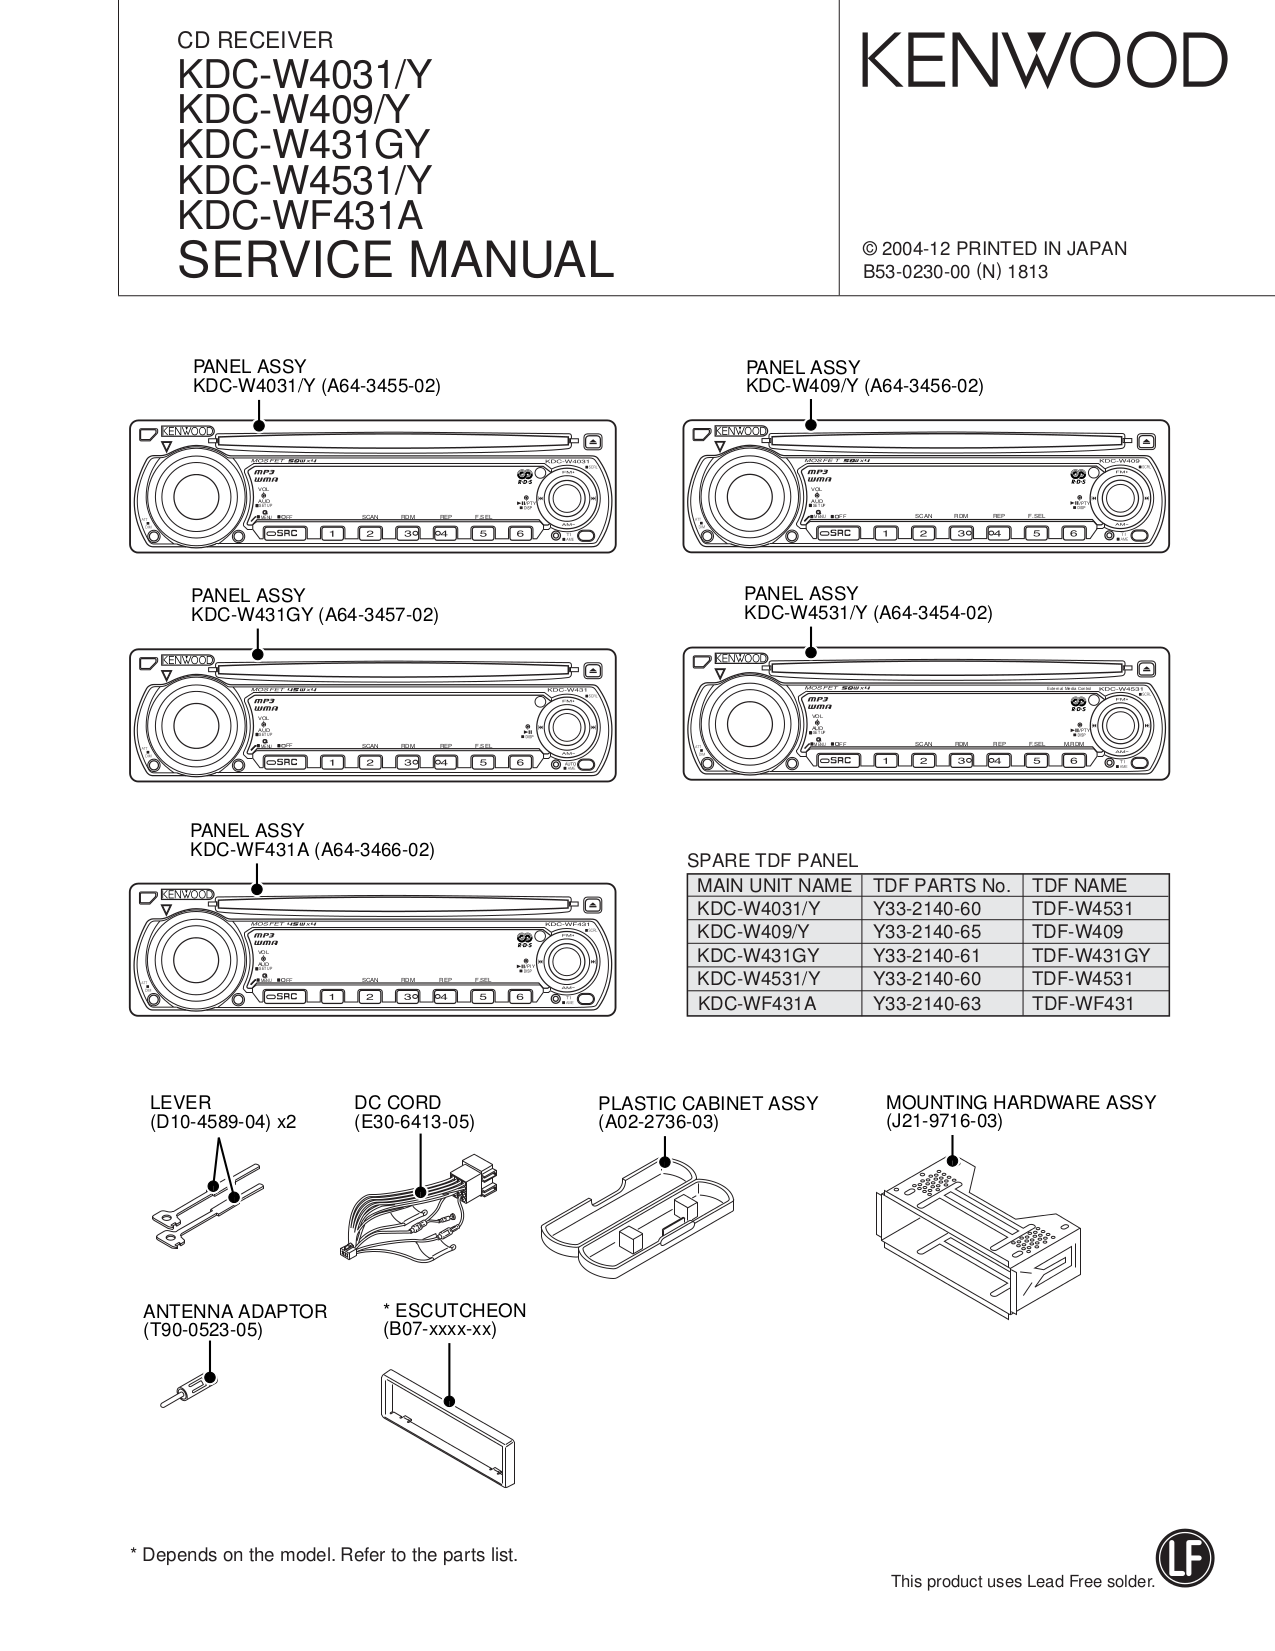 download free pdf for kenwood kdc 128cr car receiver manual rh umlib com Kenwood In-Dash Radio Kenwood Stereo System Manuals